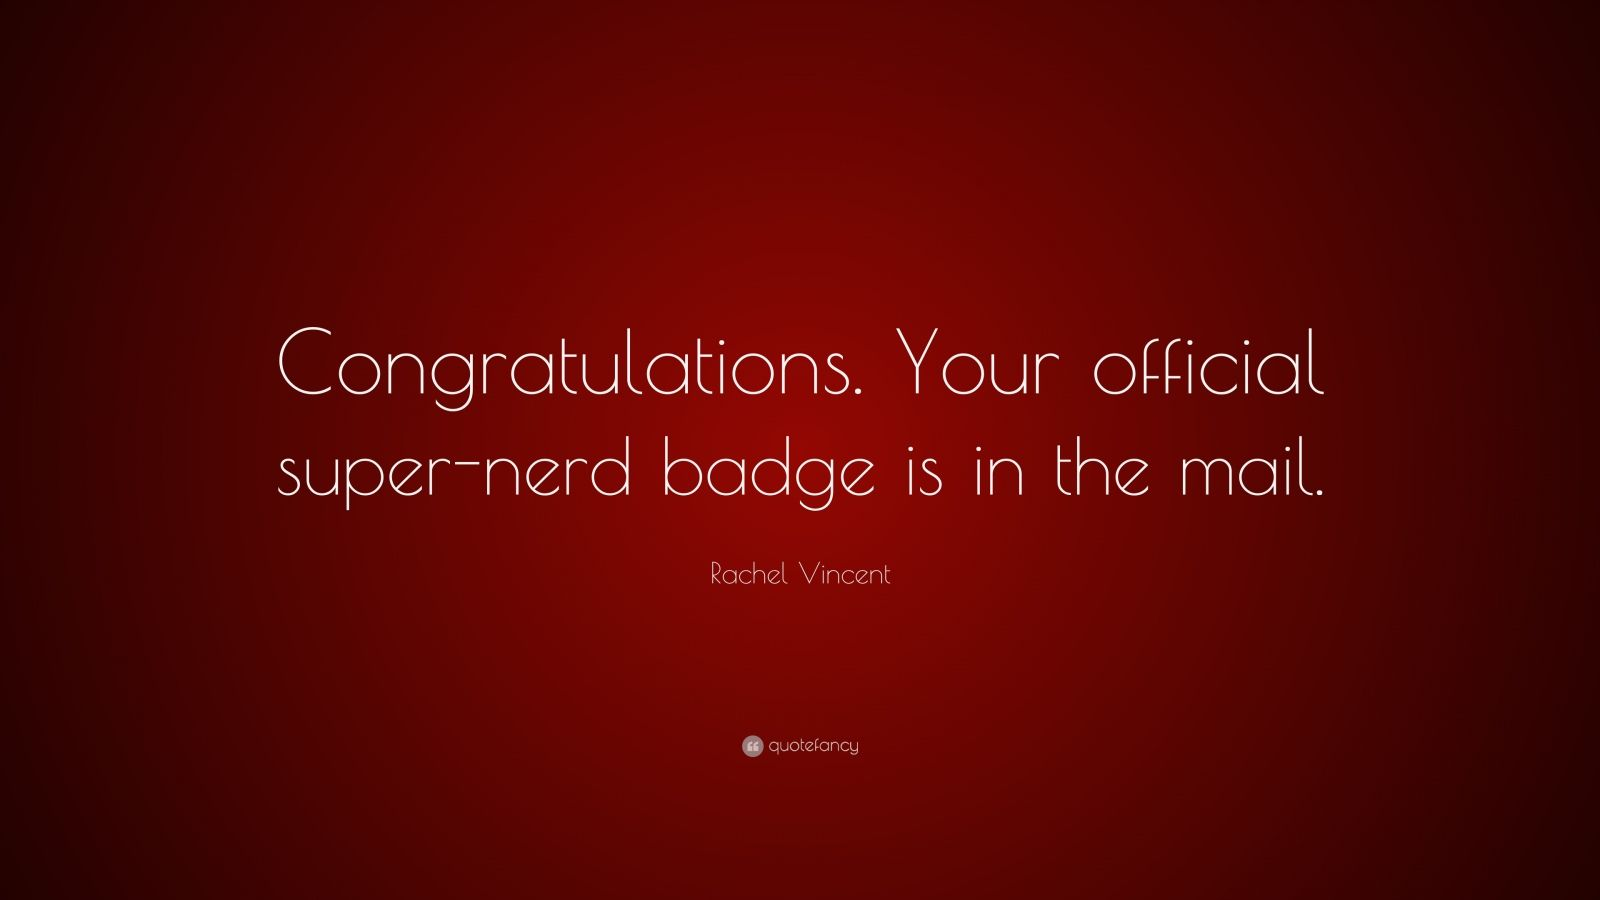 """Rachel Vincent Quote: """"Congratulations. Your official super-nerd badge is in the mail."""""""